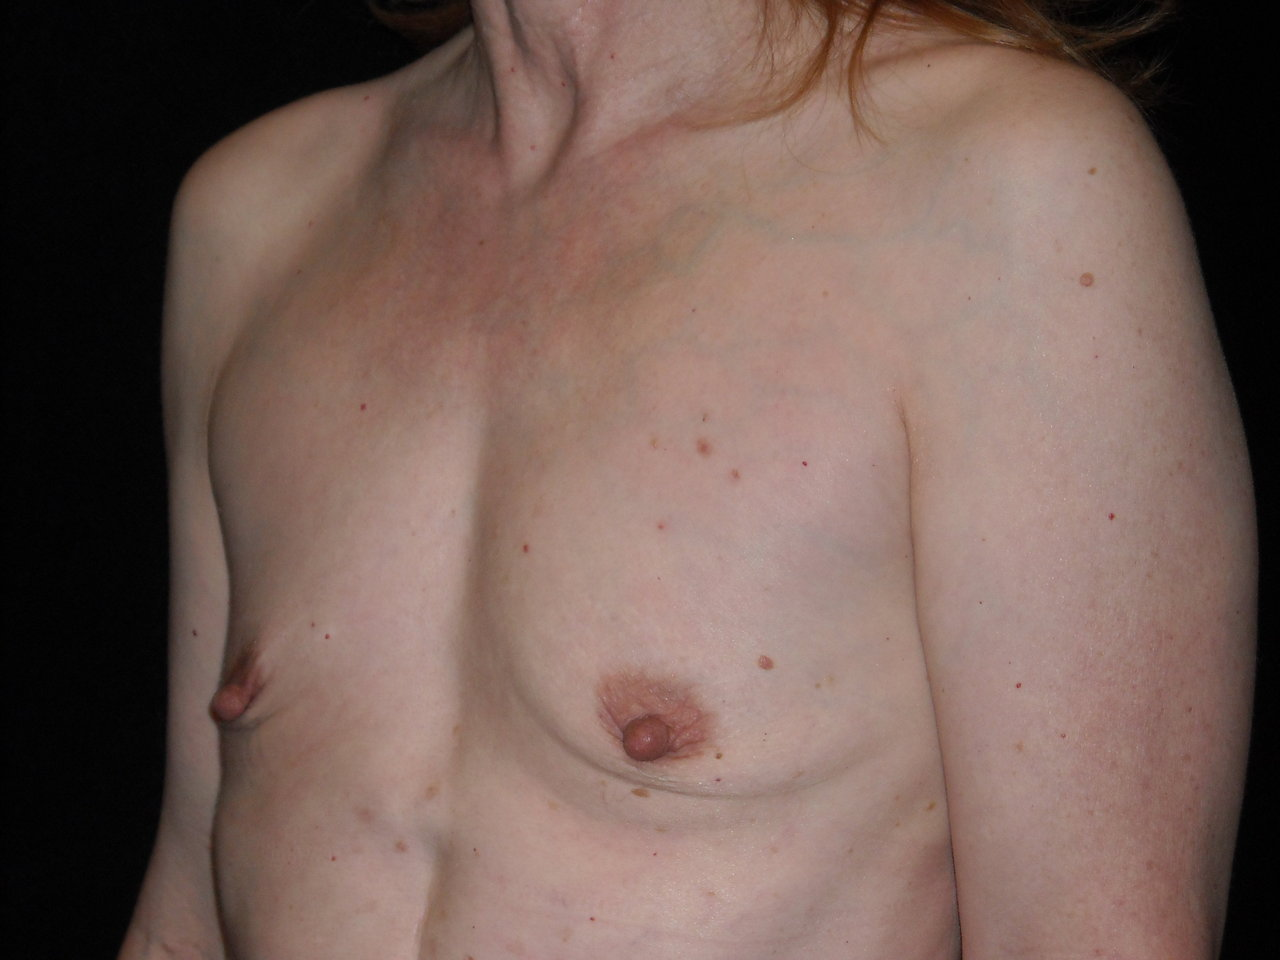 Flat chested saggy tits right!